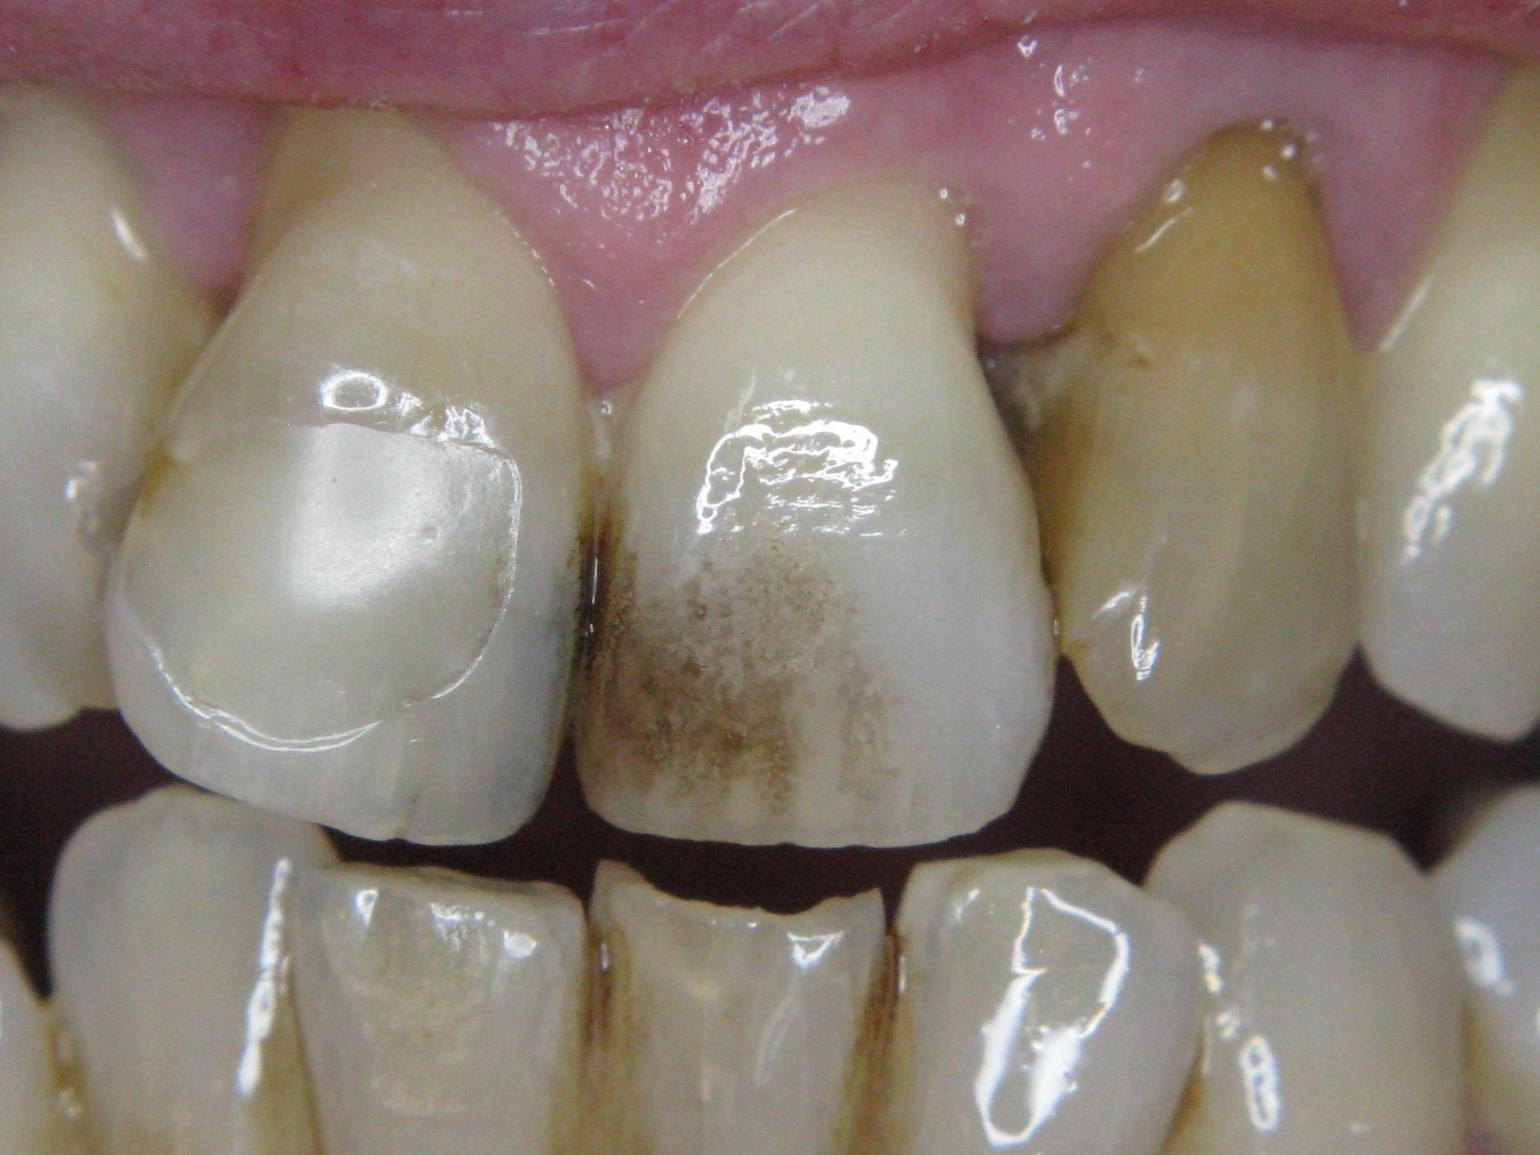 Incisors stained